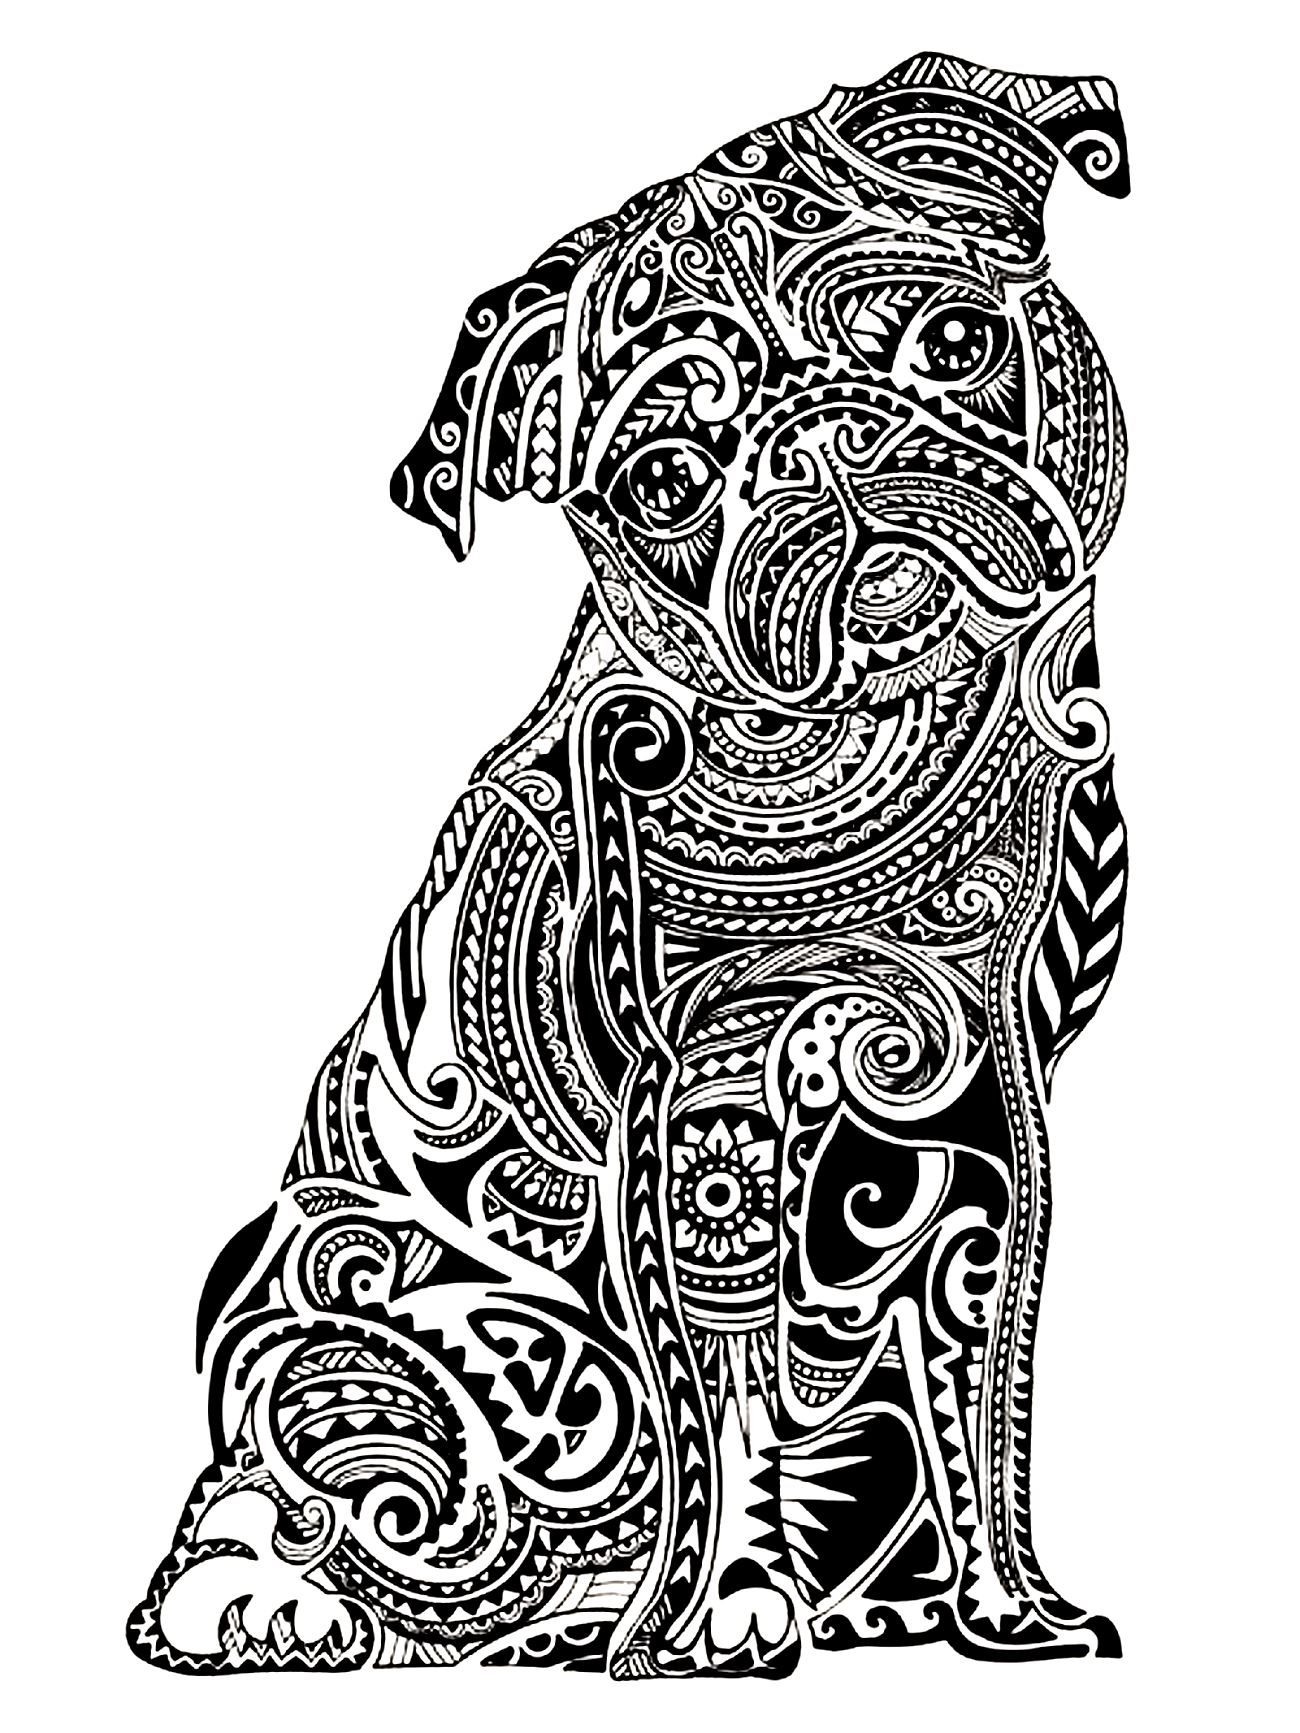 Free coloring pages for young adults - Free Coloring Page Coloring Adult Difficult Little Buldog A Cute And Young Bulldog Drawn With Very Contrasted Patterns